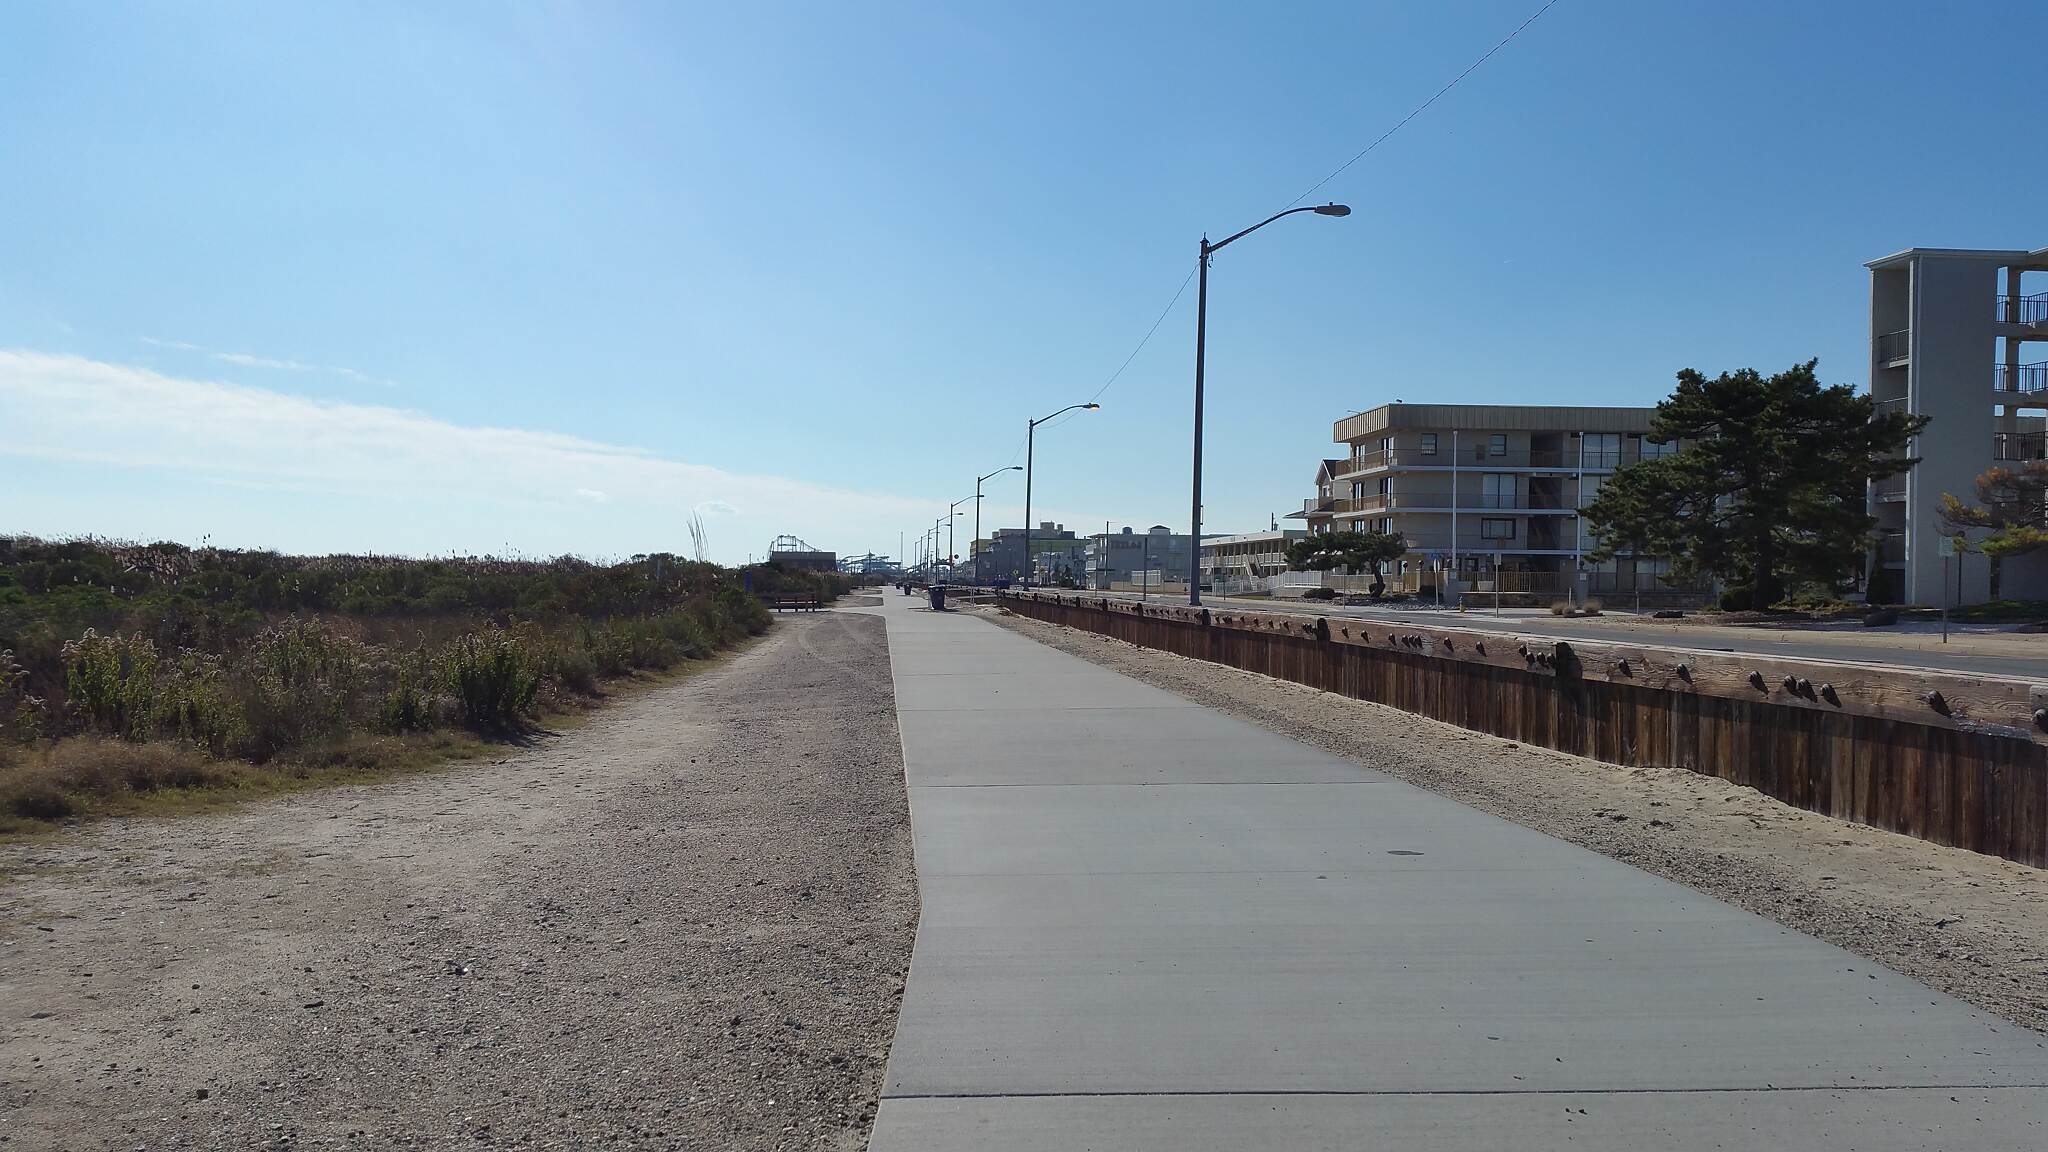 North Wildwood Seawall Trail Concrete Boardwalk A nice strip you can bike on, unlike the seawall. Location Parallel with the ocean near Kennedy Beach Dr.